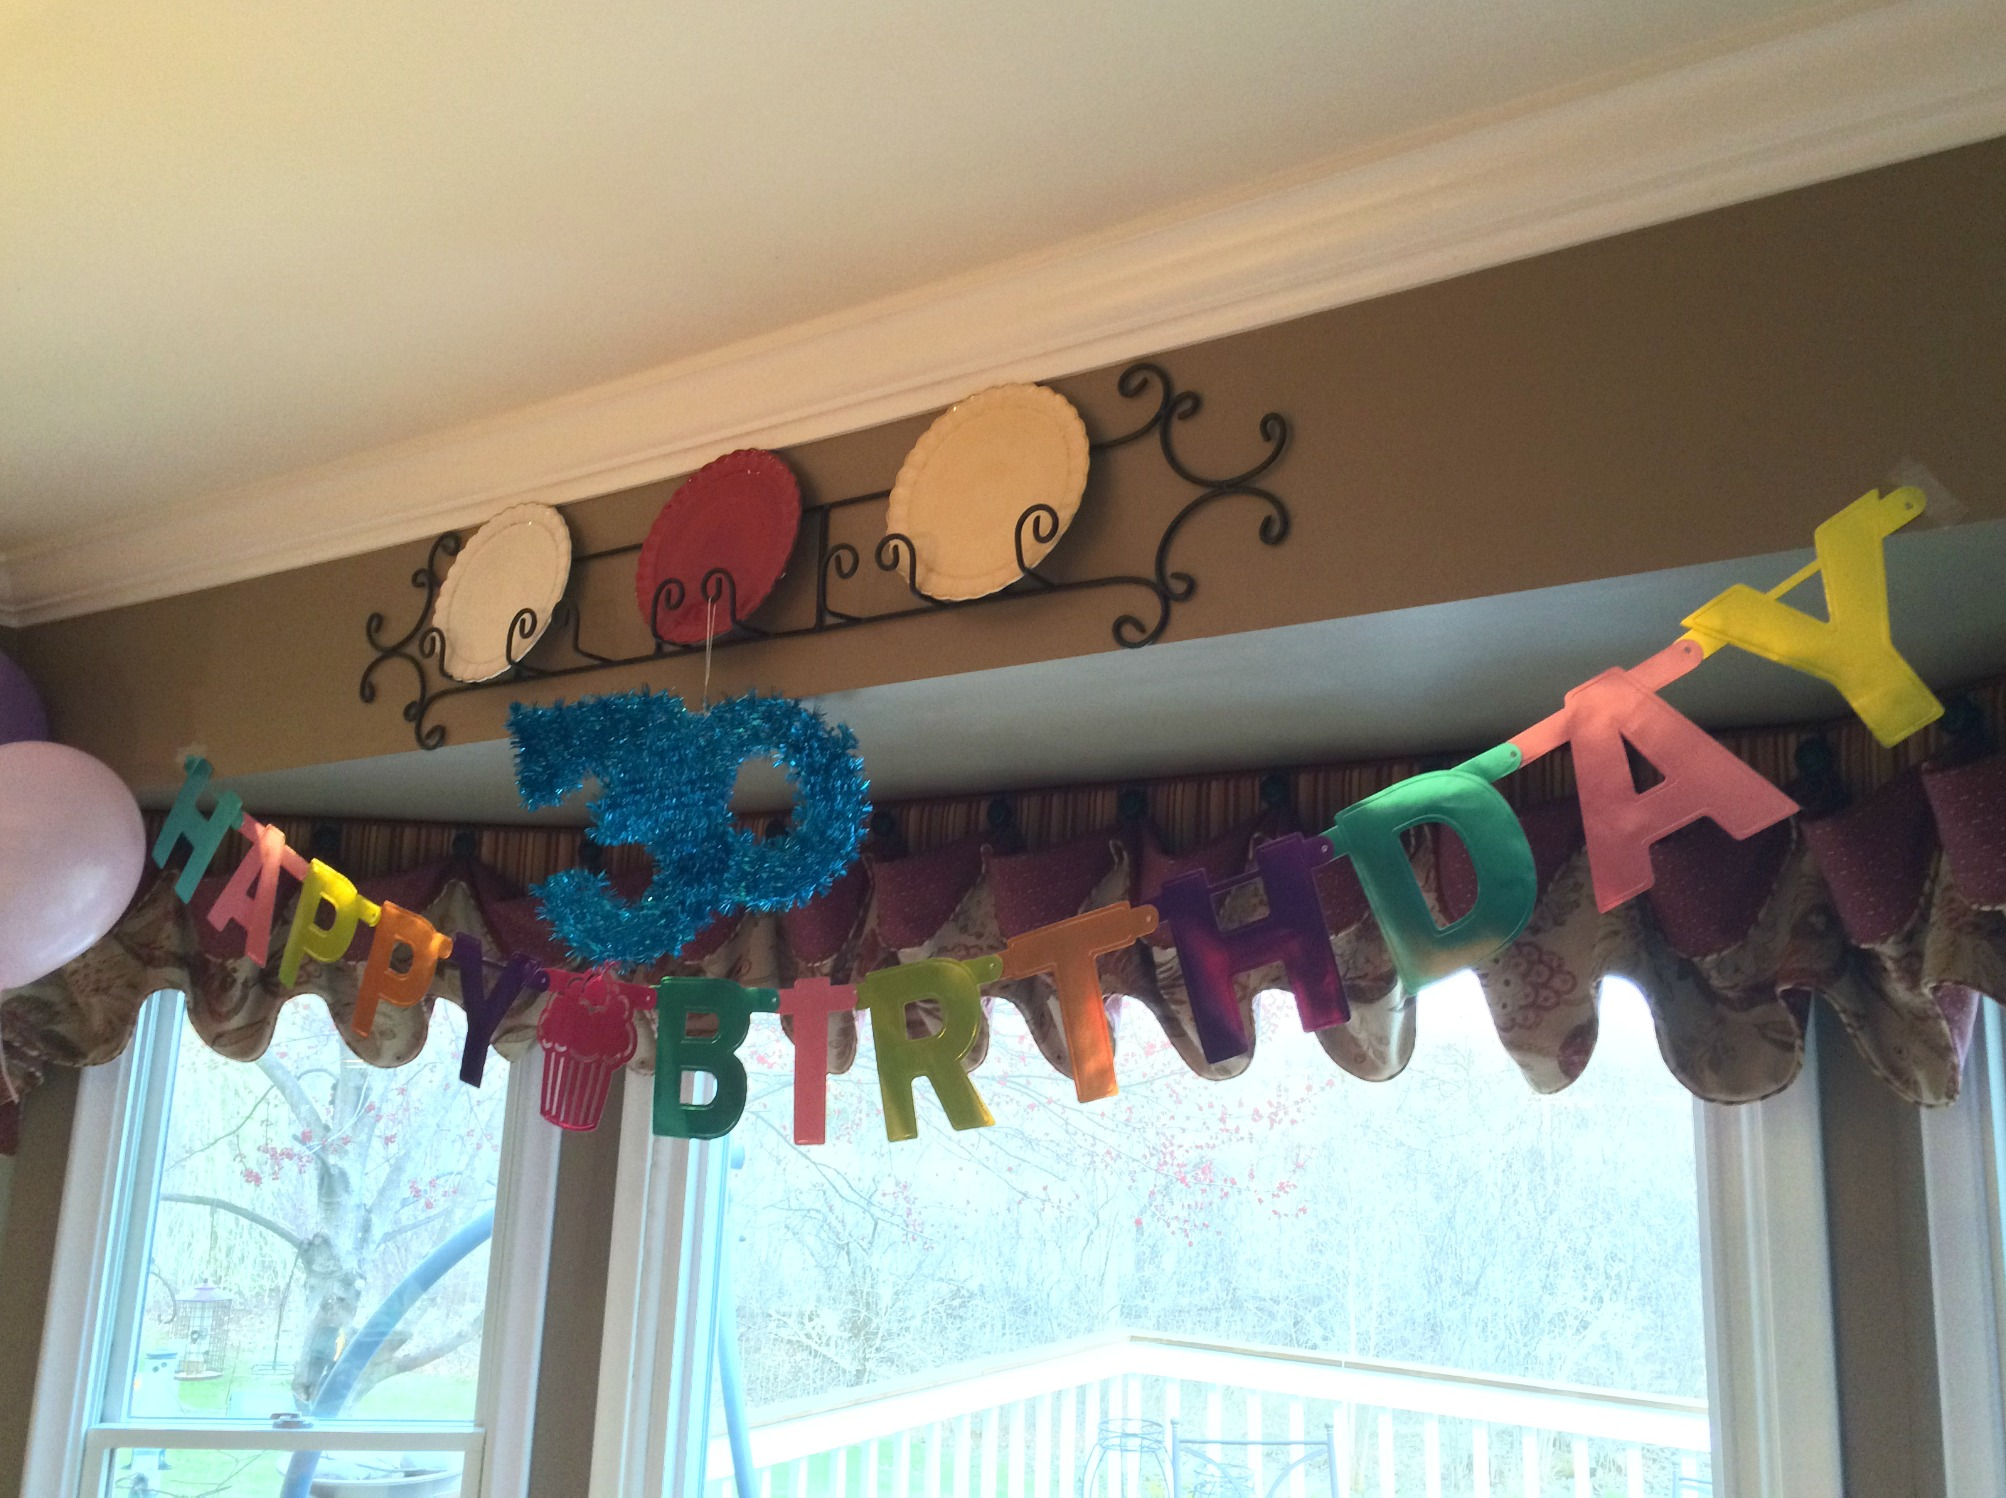 happy birthday banner and 30 sign